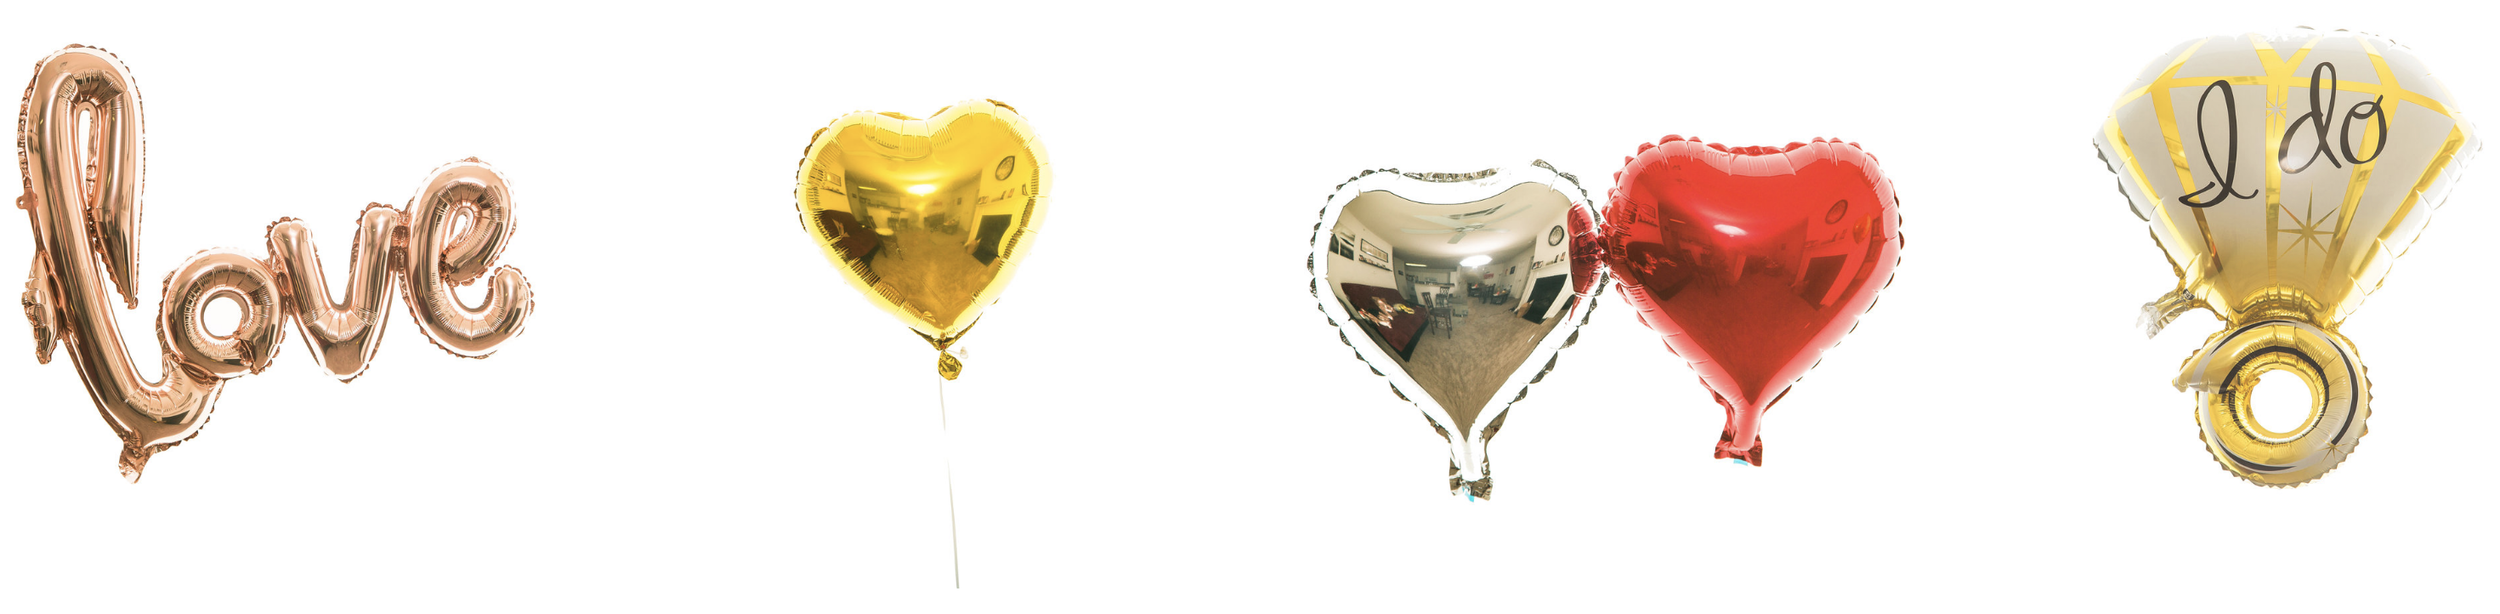 Party Balloons | Le Blanc Photo Booth